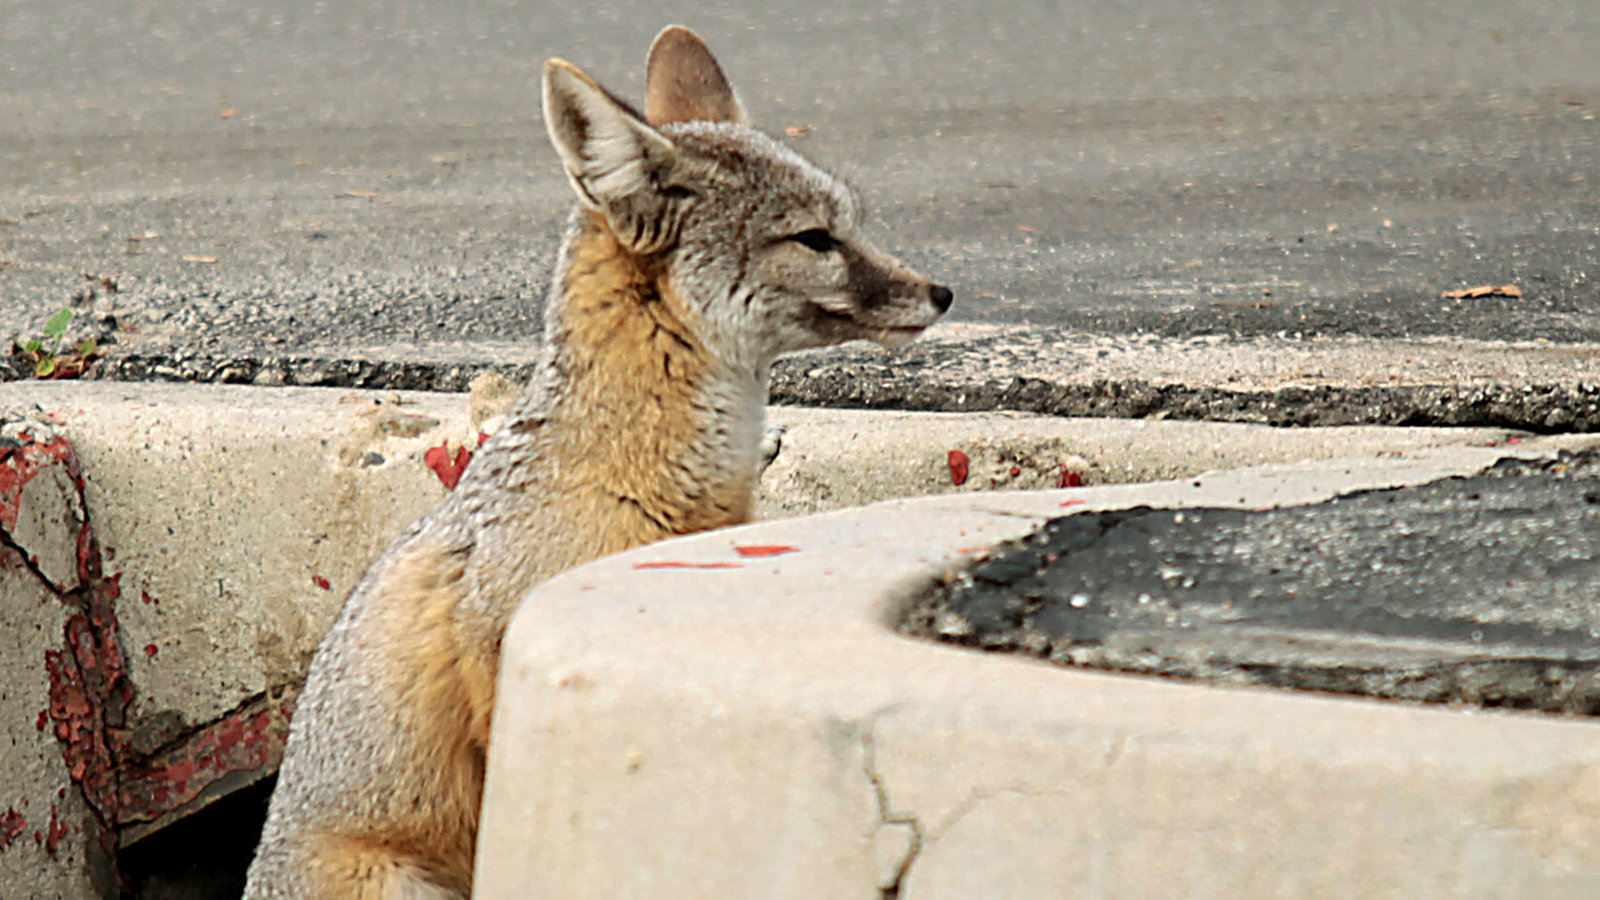 Interior Nominee Intervened To Block Report On Endangered